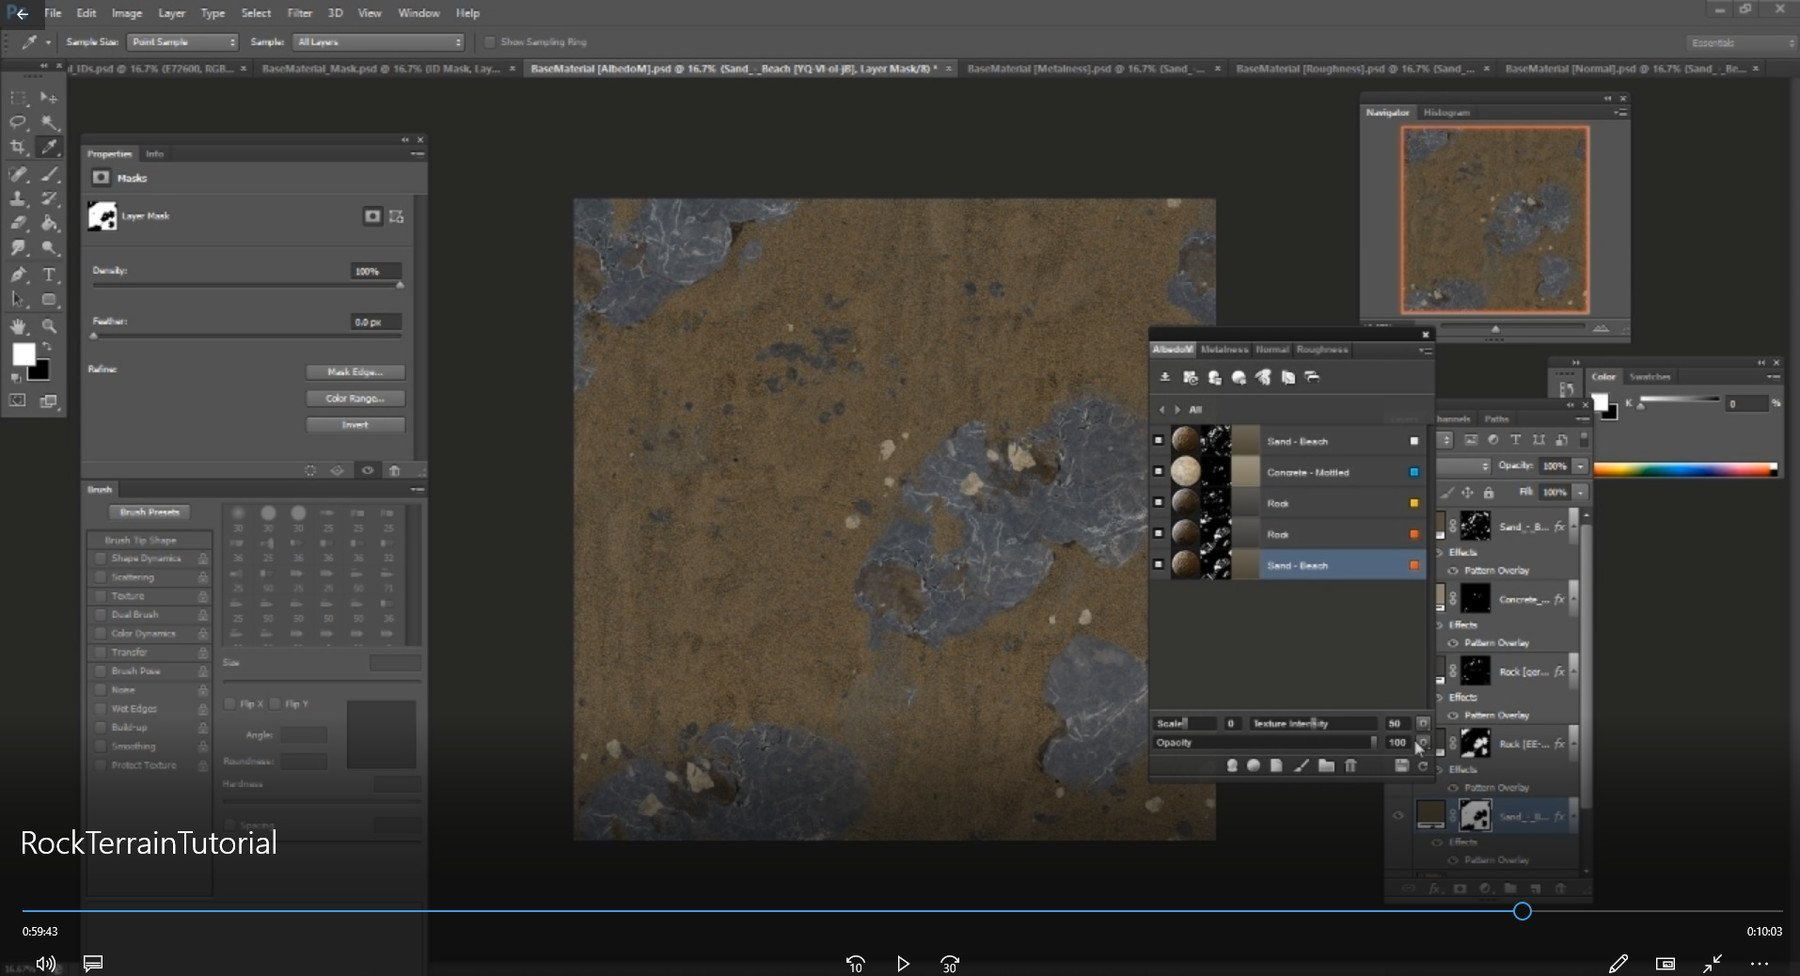 Tyler Smith - Terrain Tile Texture and Rock Game Asset